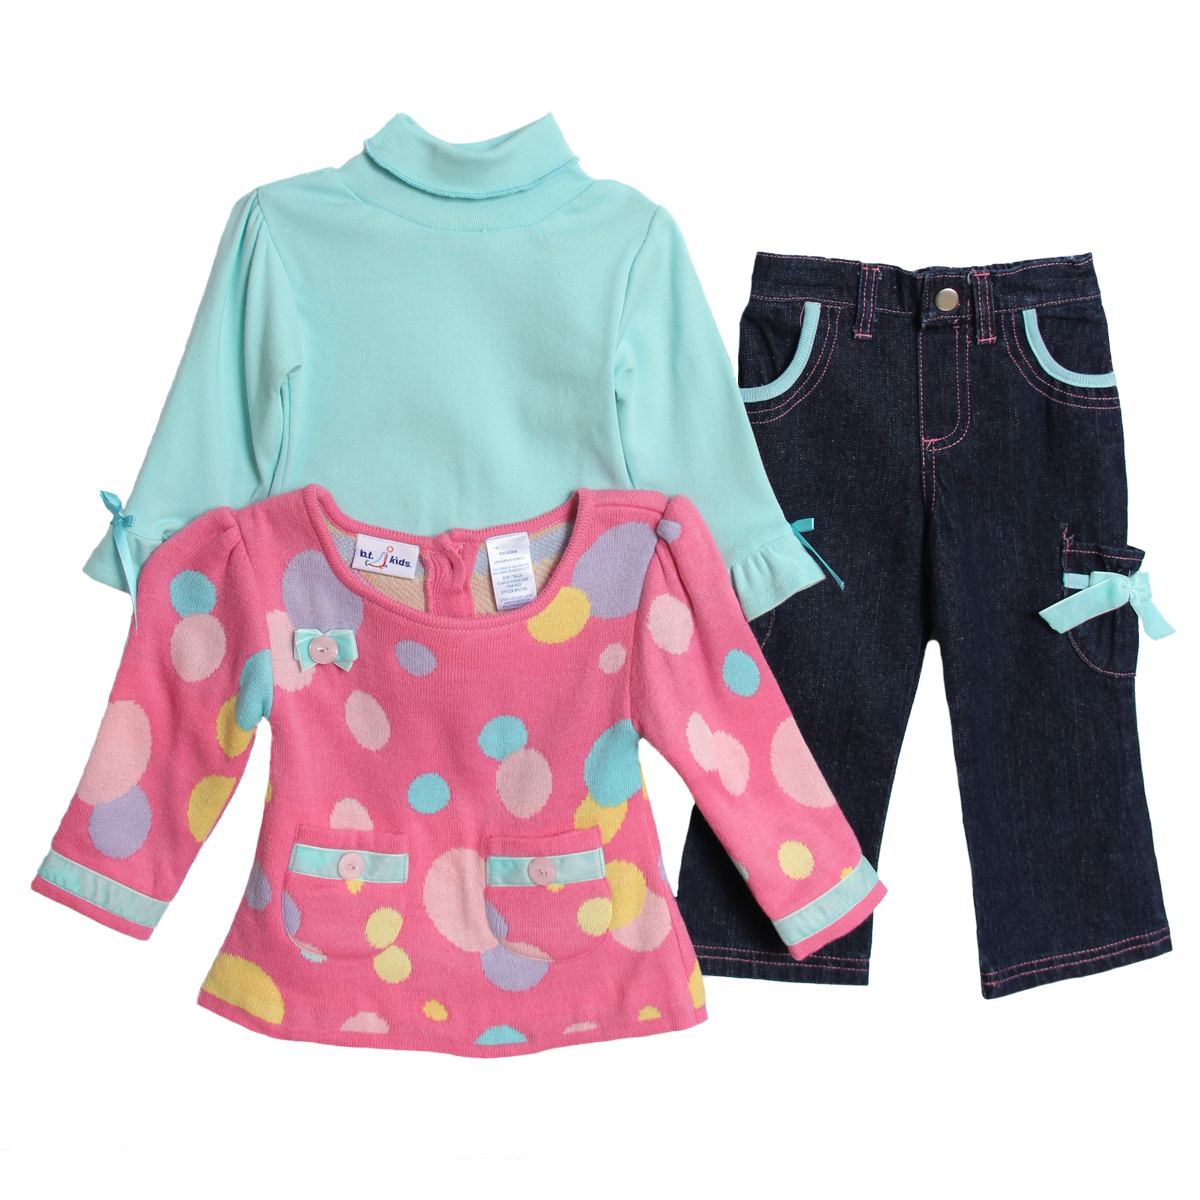 B.T. Kids Infant Baby Girls 3 Piece Pink Polka Dot Sweater Turtleneck Pants Set at Sears.com